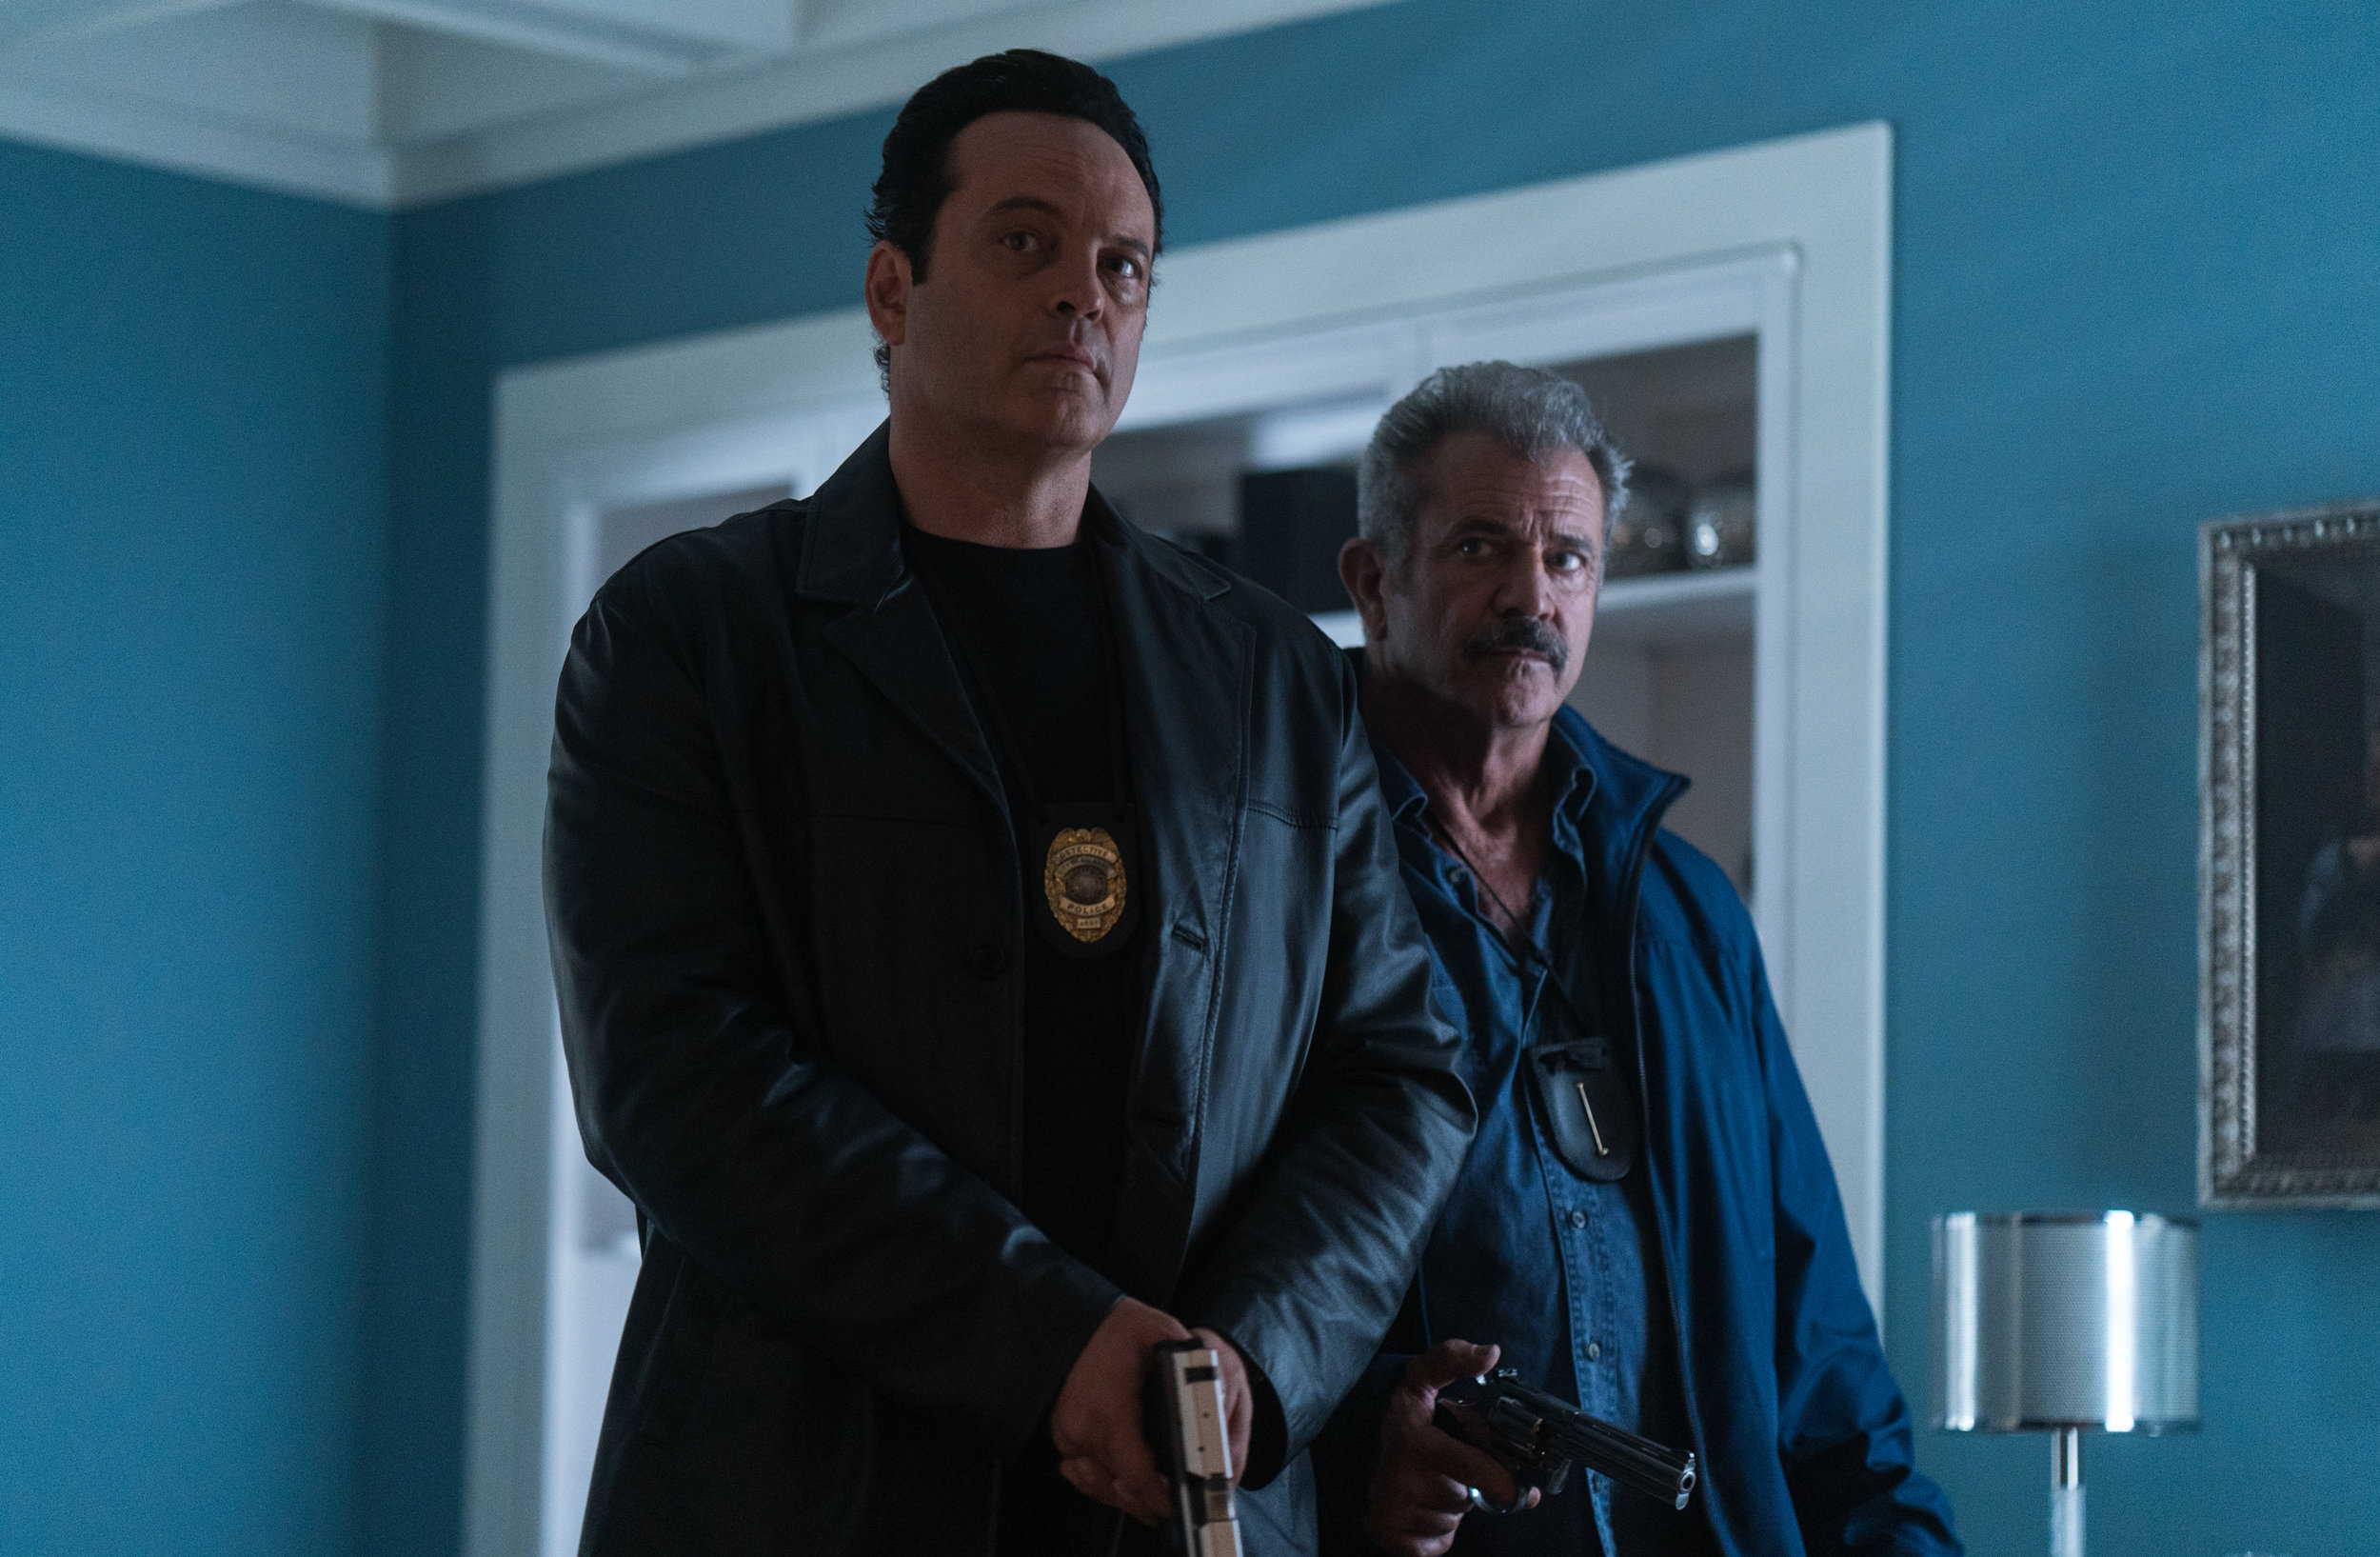 Dragged Across Concrete - Complex characters, motivations and moral outcomes along with the action.